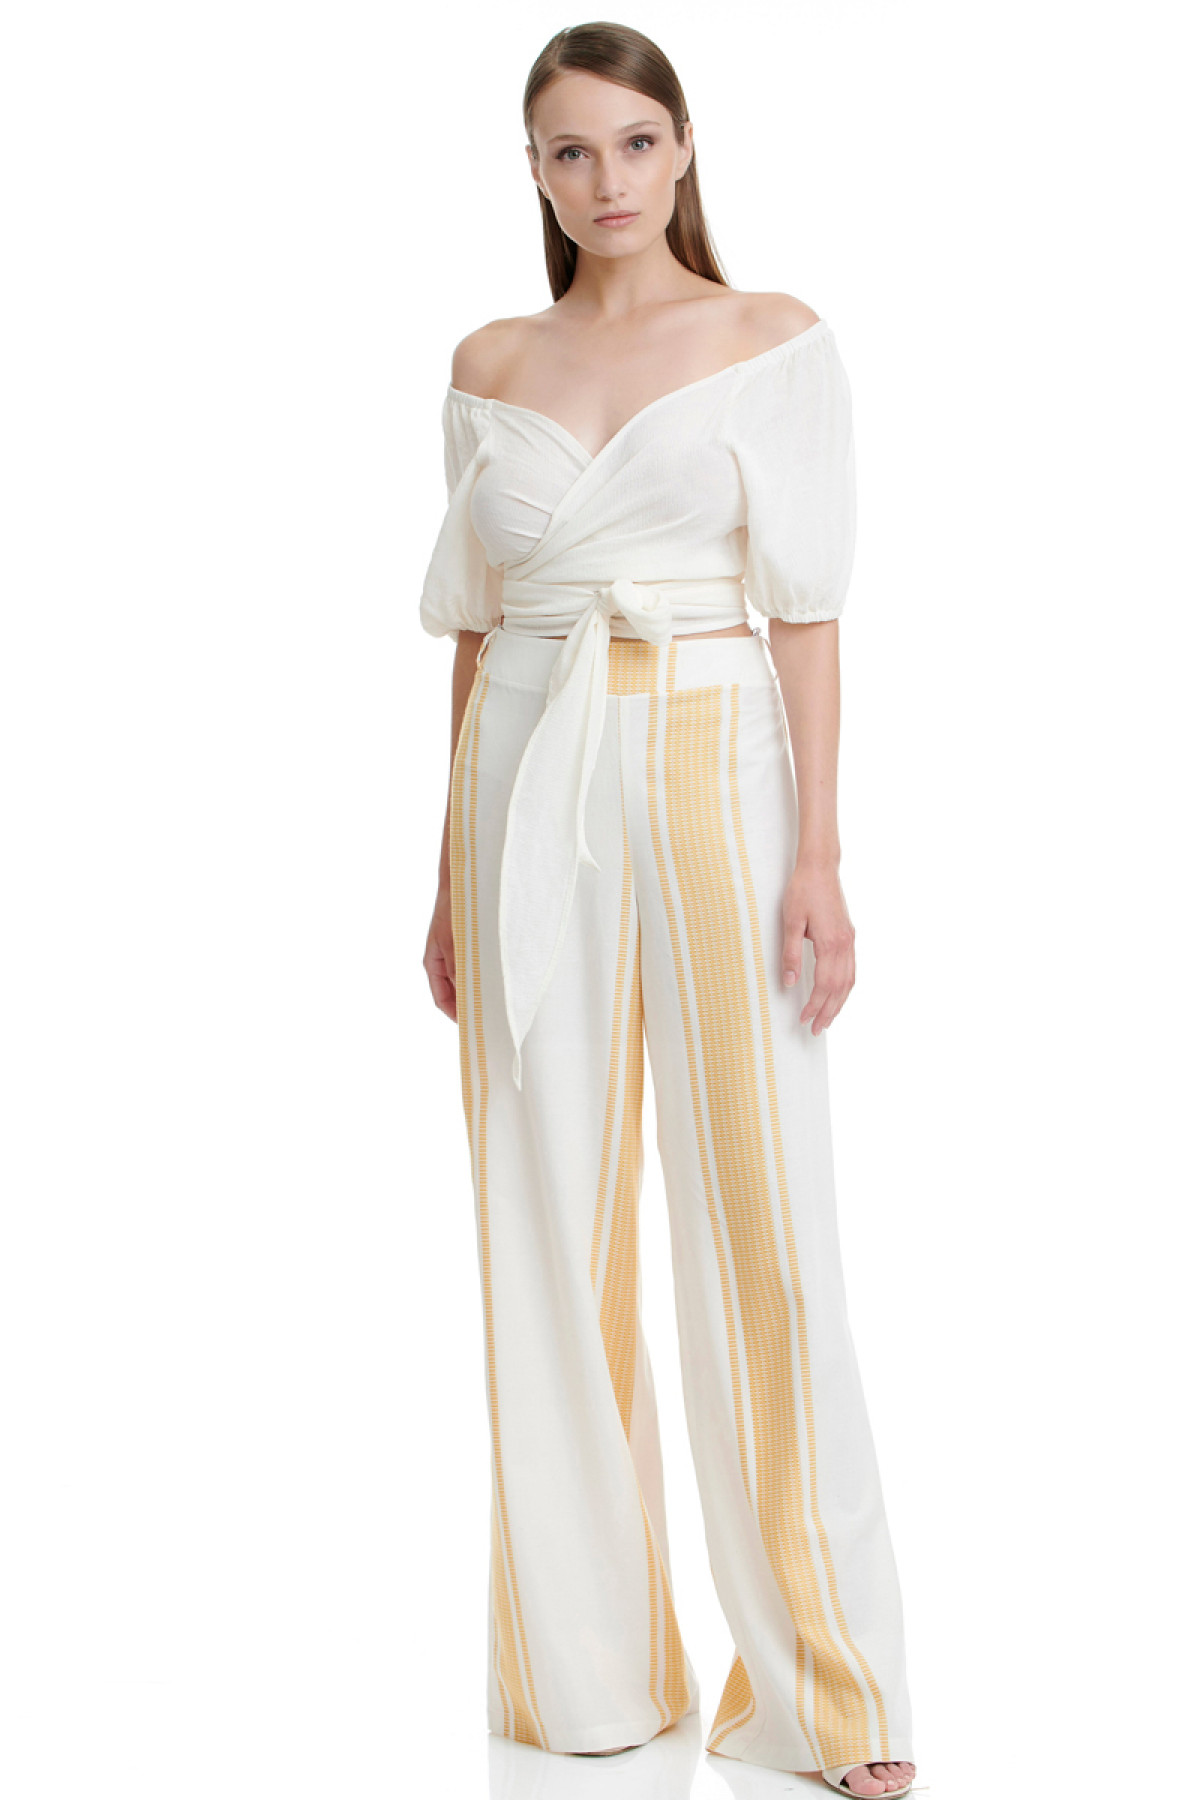 OCHER STRIPES WIDE LEG TROUSERS